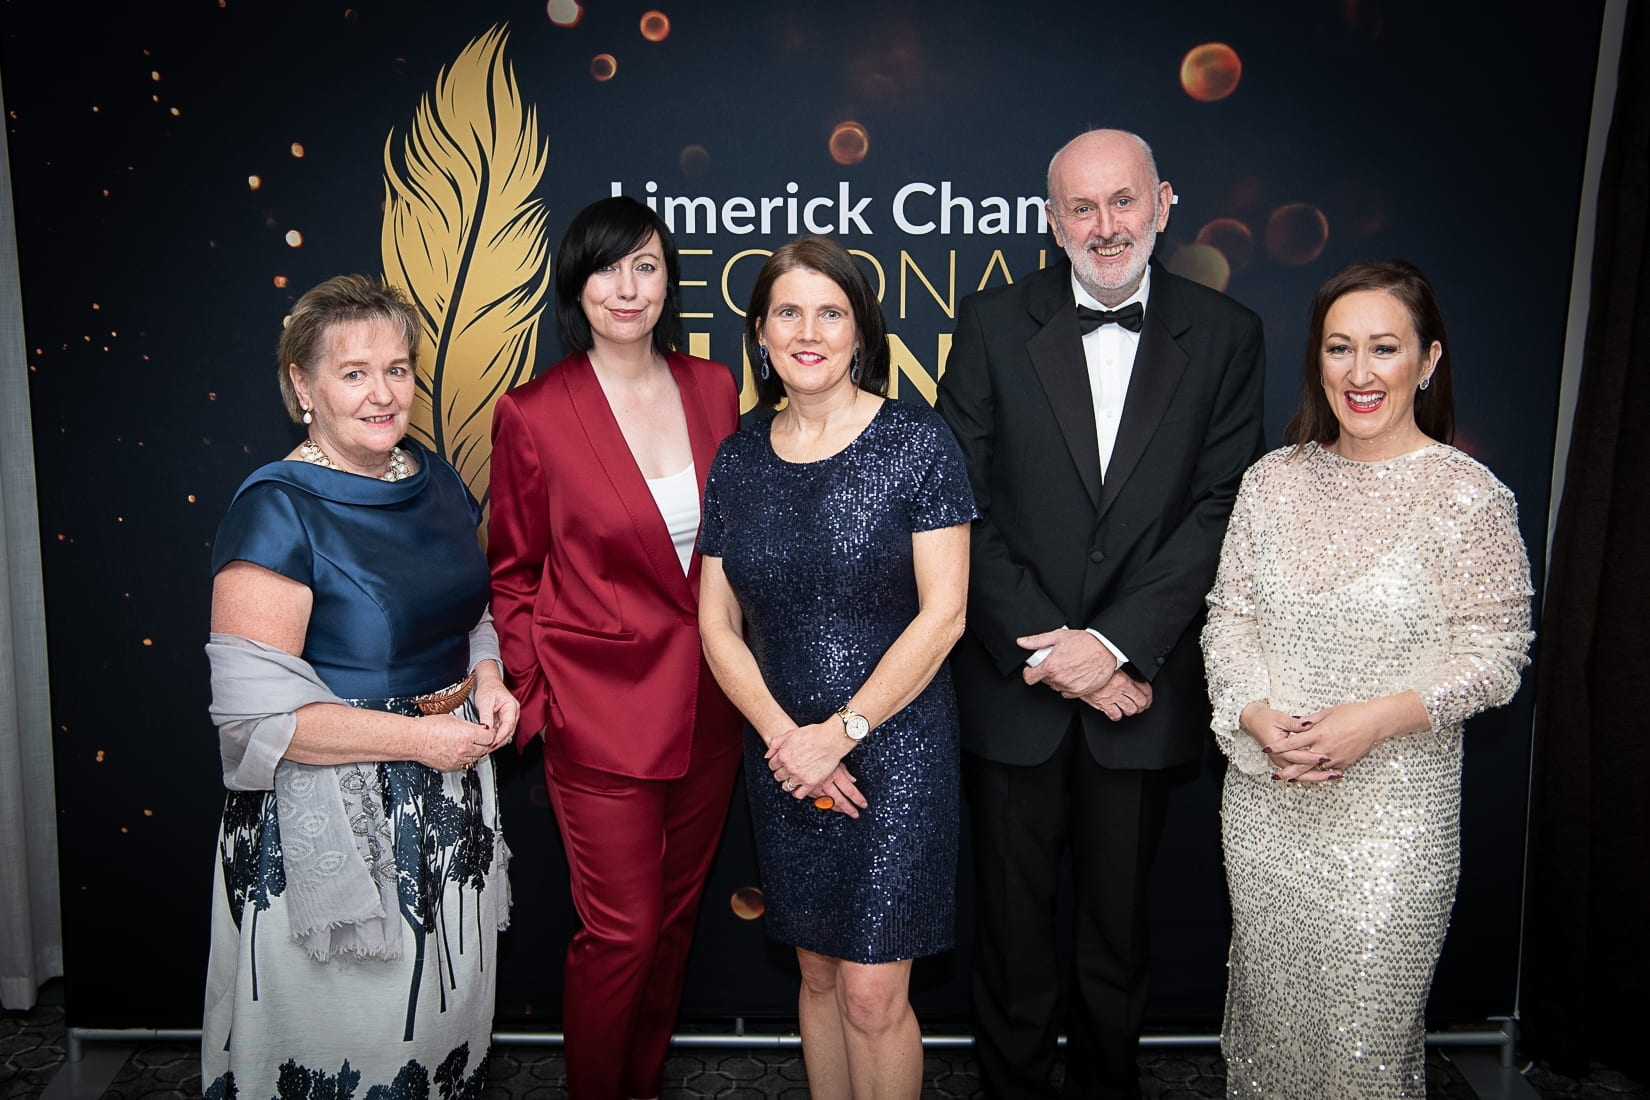 No repro fee-Limerick Chamber President's Dinner and Limerick Chamber Regional Business Awards 2019 which was held in the Strand Hotel on Friday 15th November / Limerick Chamber Skillnet Sponsors/  - From Left to Right: Yvonne Delaney, Lisa Moloney, Anne Morris - Limerick Chamber Skillnet / Sponsor, Fergal Delaney, Fiona Hayes. Photo credit Shauna Kennedy